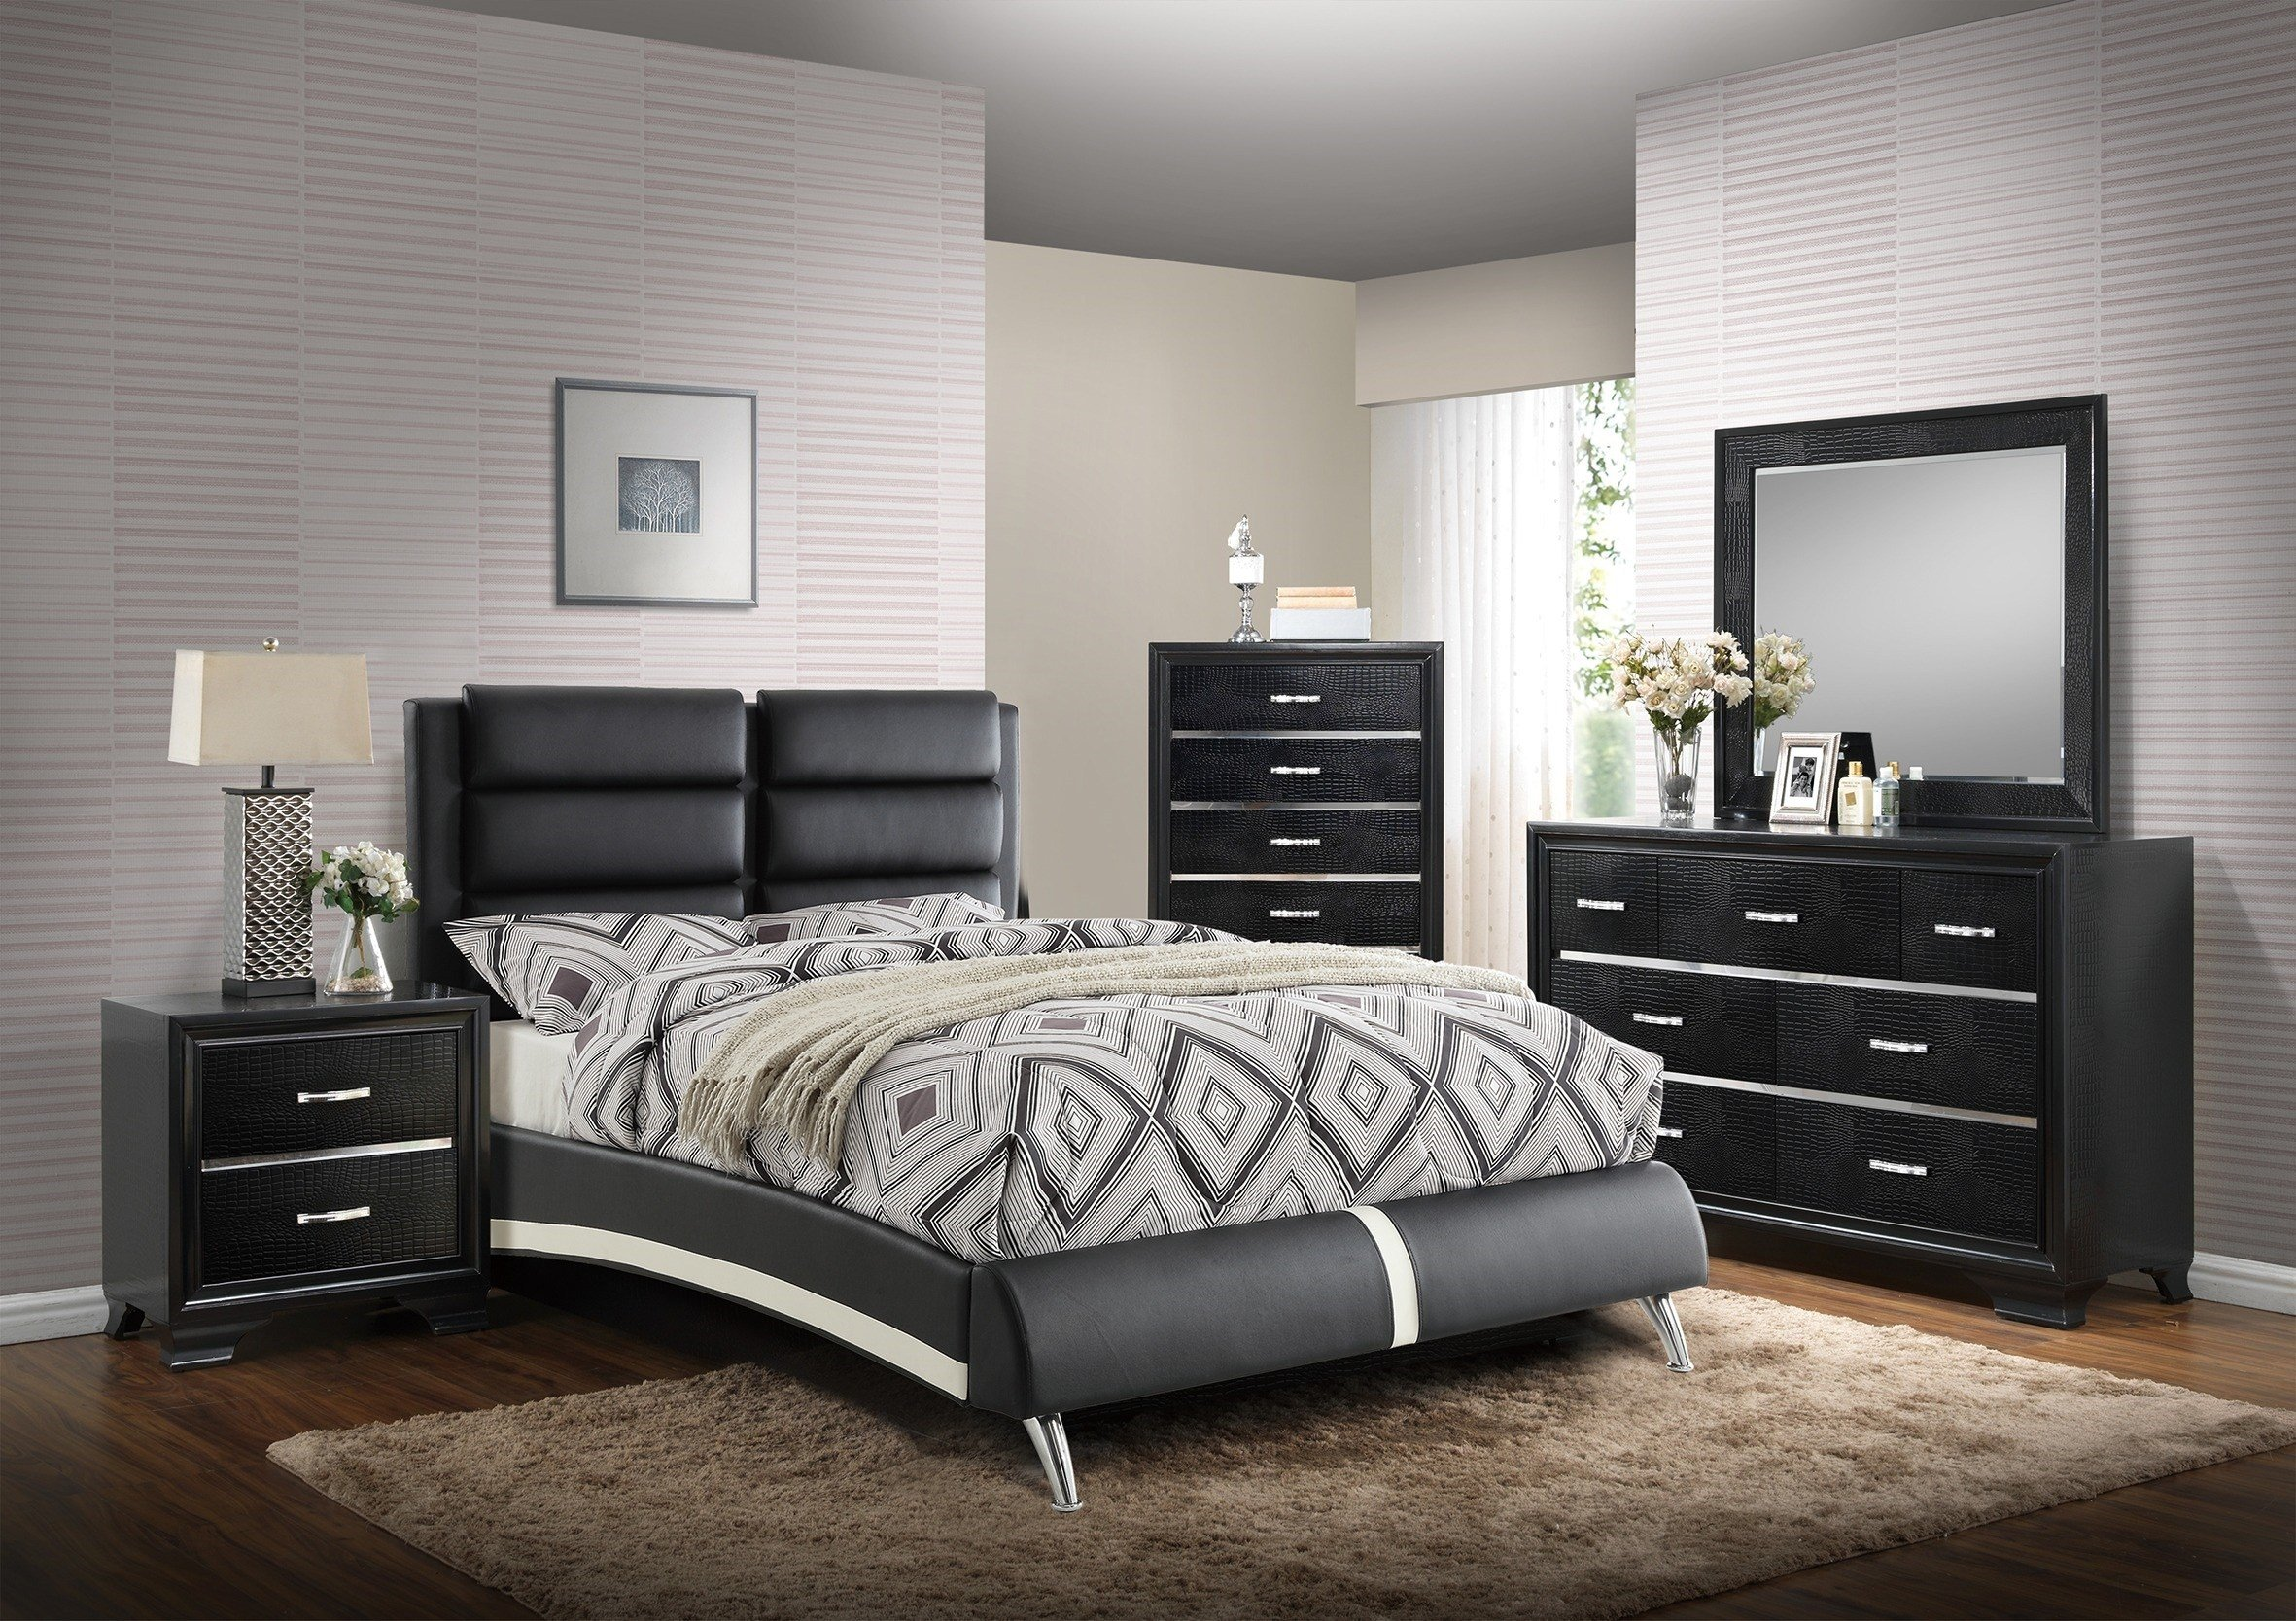 Best Bedroom Poundex Black Leather Cal King Bed Set Hot With Pictures